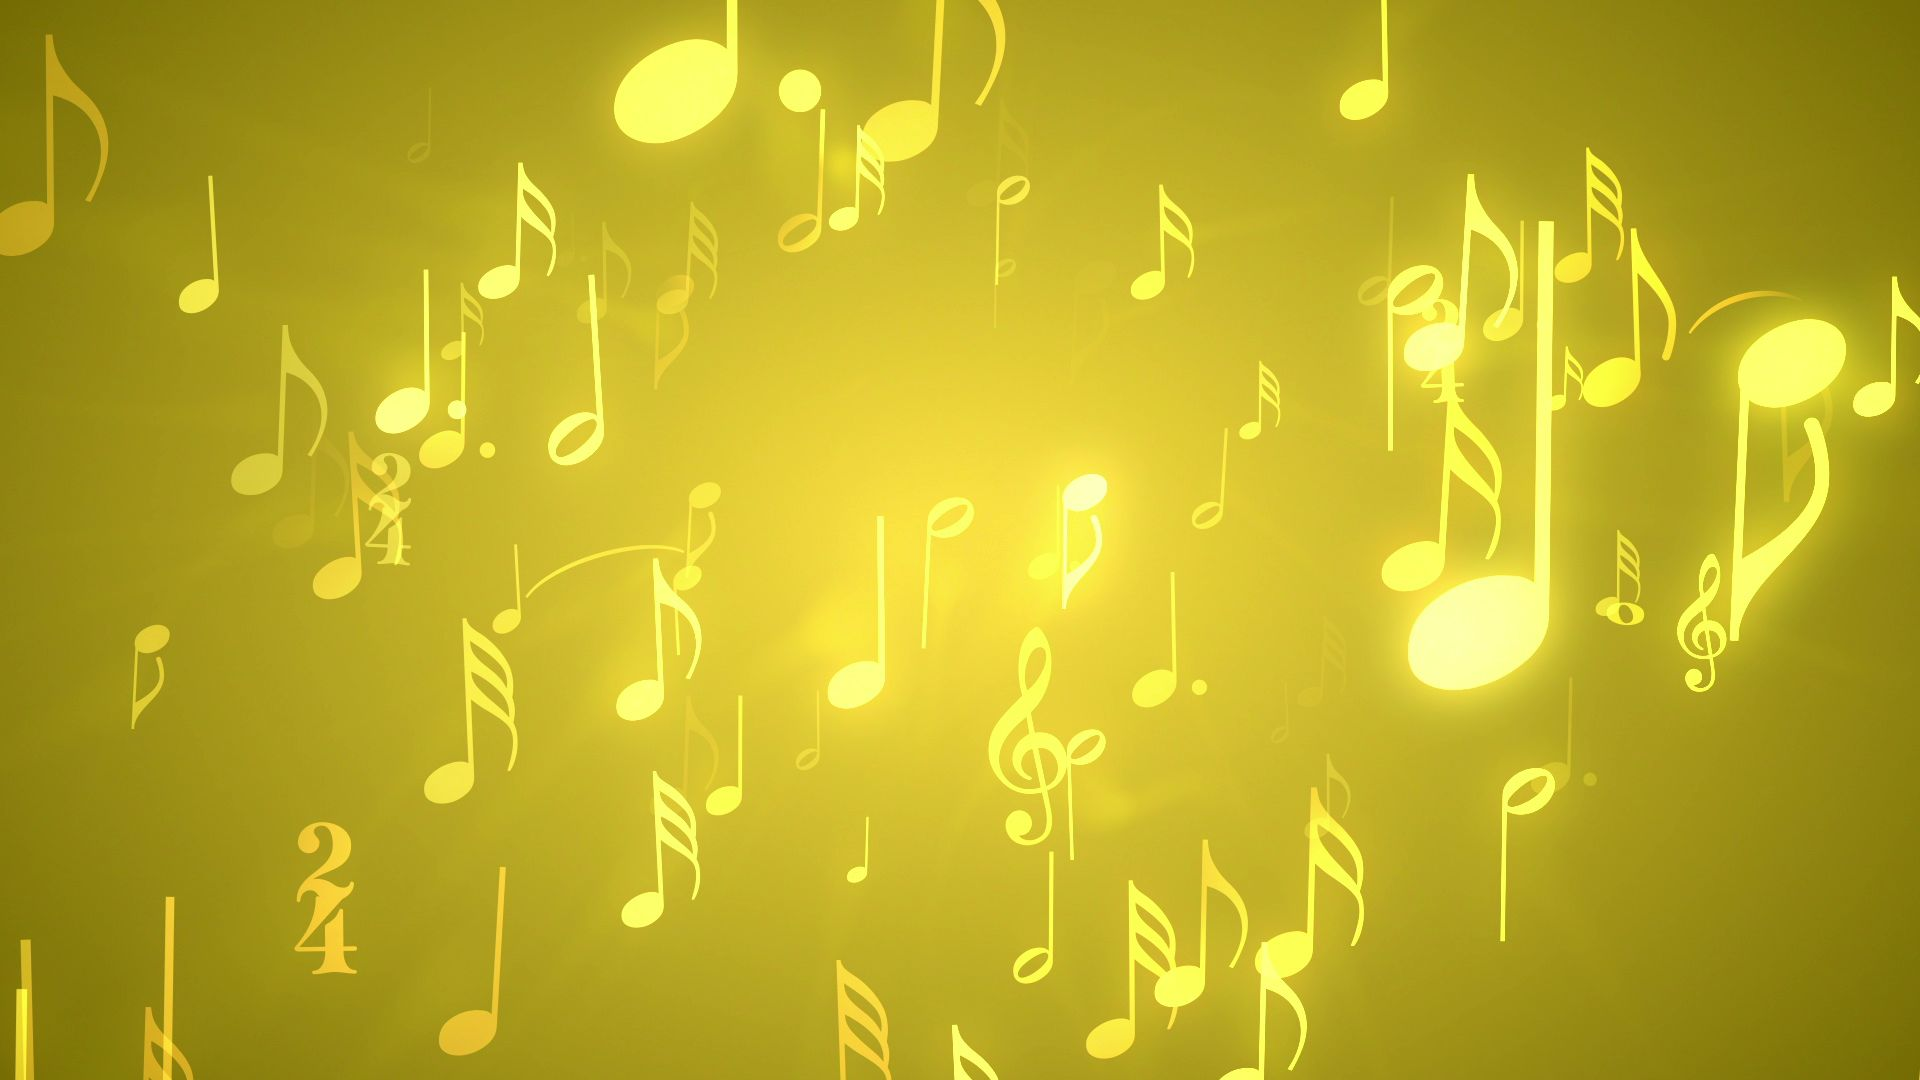 Music Note Backgrounds: Downloops – Creative Motion Backgrounds